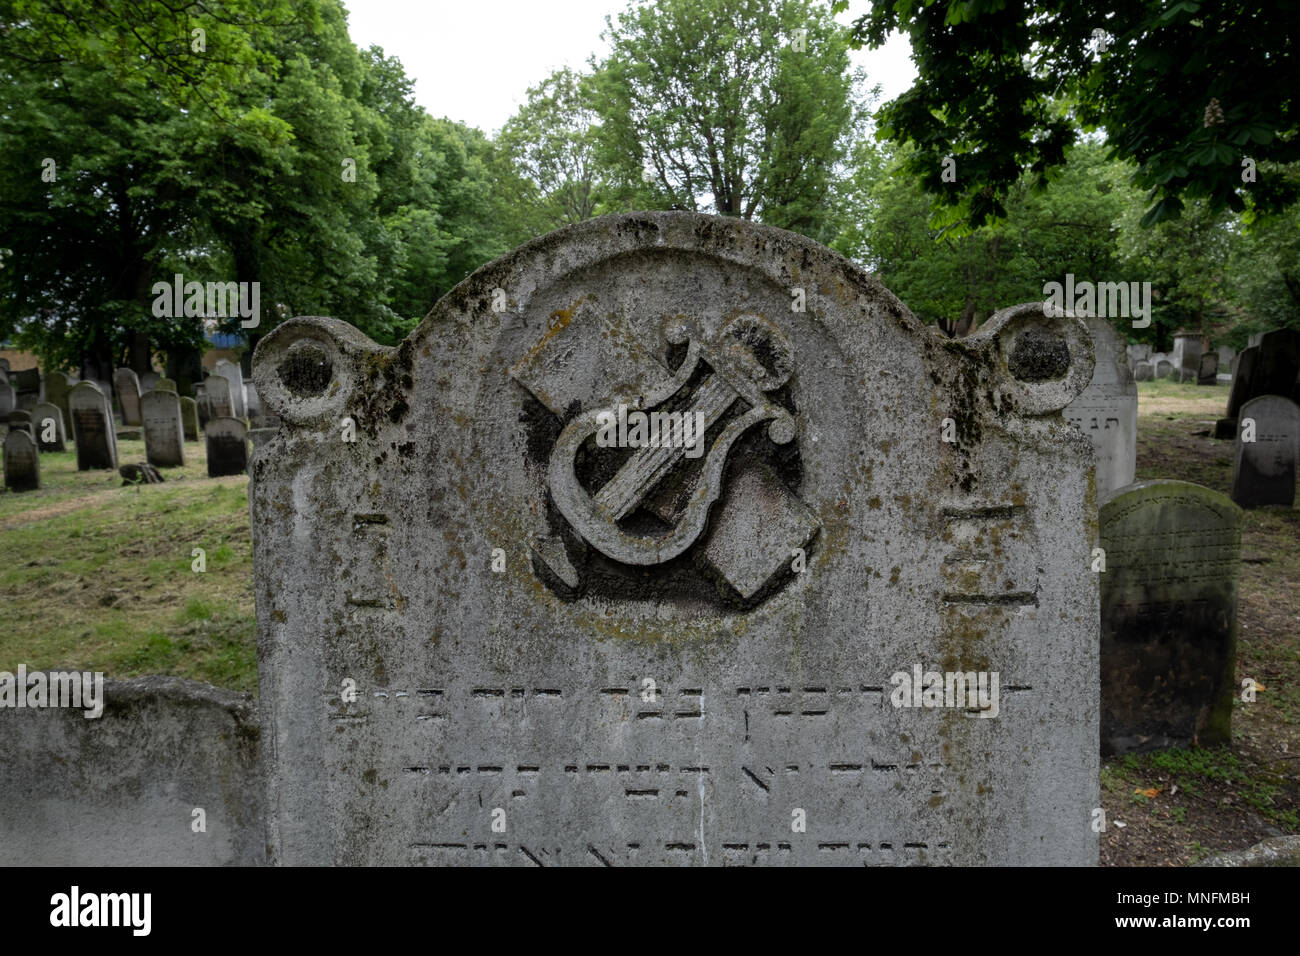 London UK. Close up photo of tombstone at the historic Jewish cemetery at Brady Street, Whitechapel, East London, showing lyre / harp symbol. - Stock Image